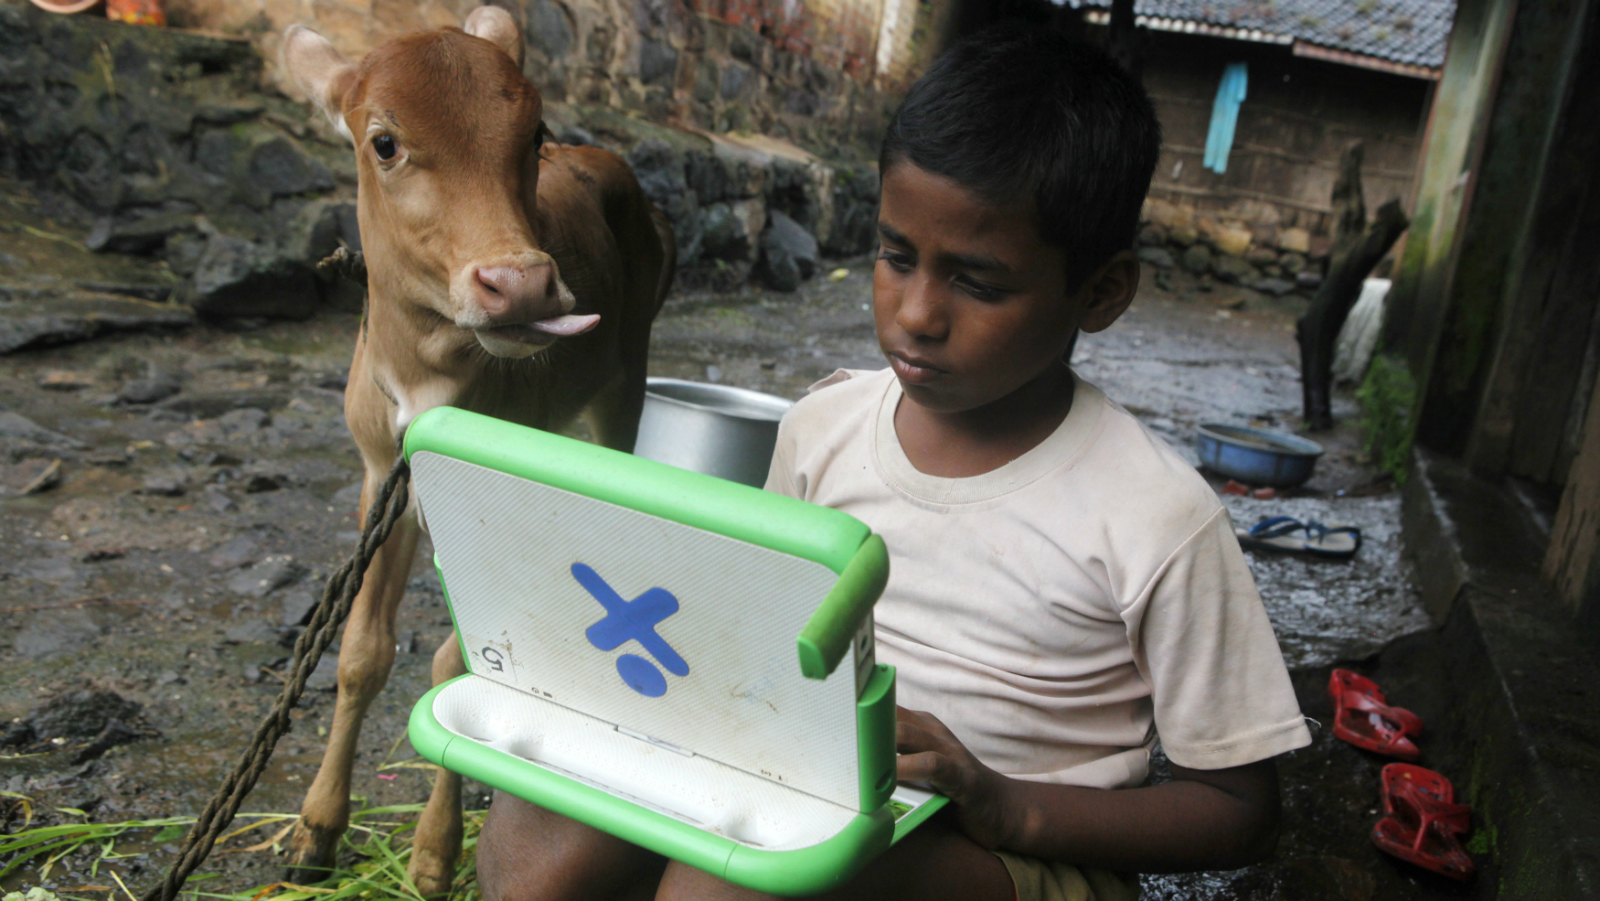 """Harish, 11, a school boy uses a laptop provided under the """"One Laptop Per Child' project by a non-governmental organisation (NGO) as a calf stands next to him, on the eve of International Literacy Day at Khairat village, about 90 km (56 miles) from Mumbai September 7, 2010. International Literacy Day is celebrated each year on September 8."""